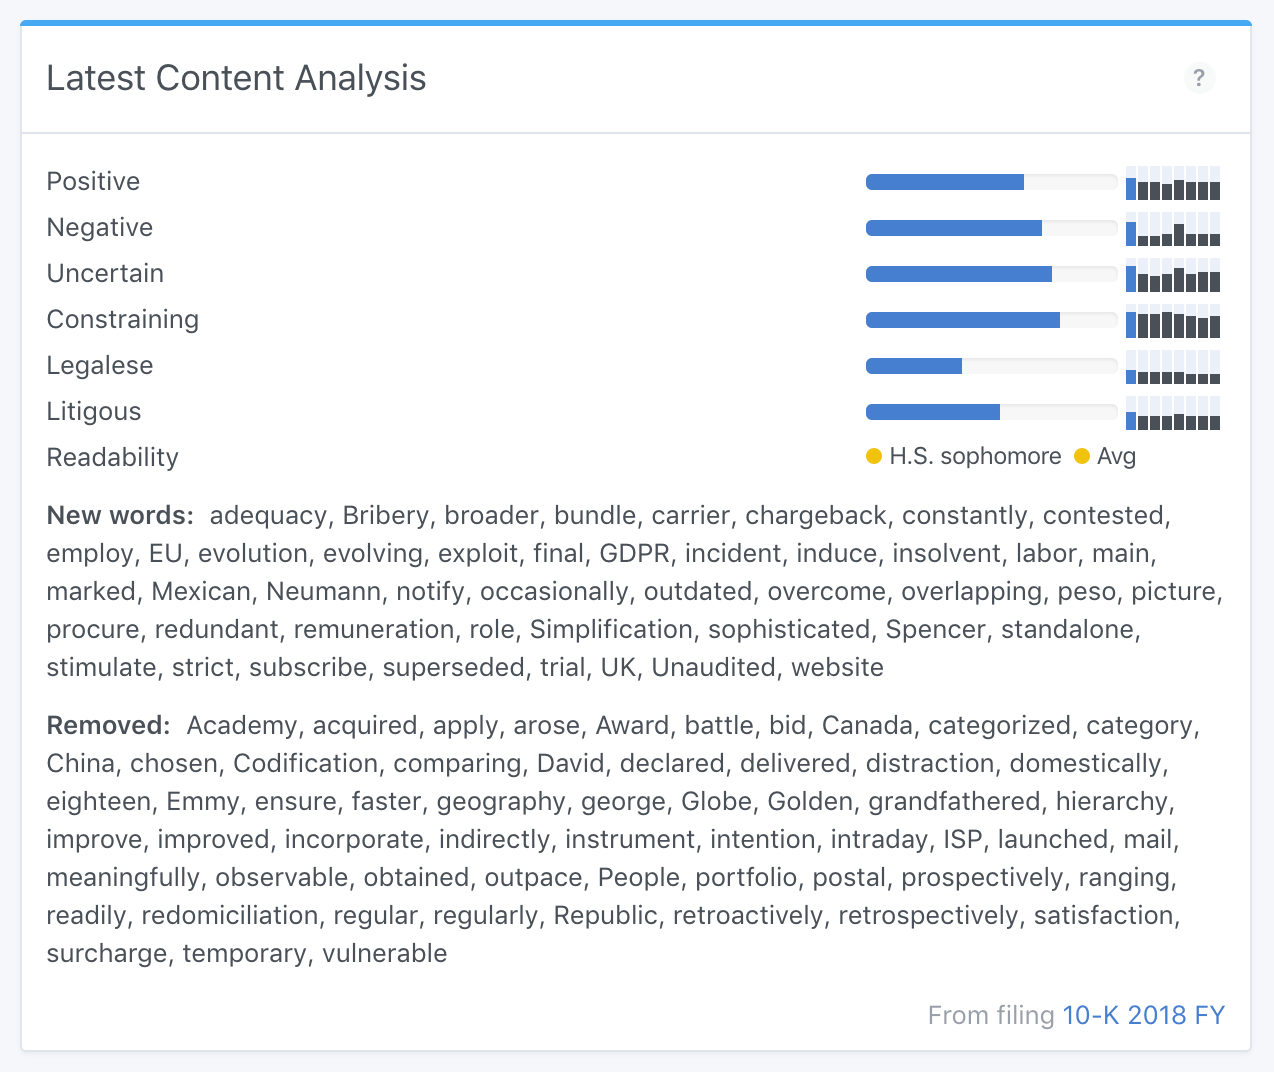 Sentiment analysis example from Netflix 10-K report